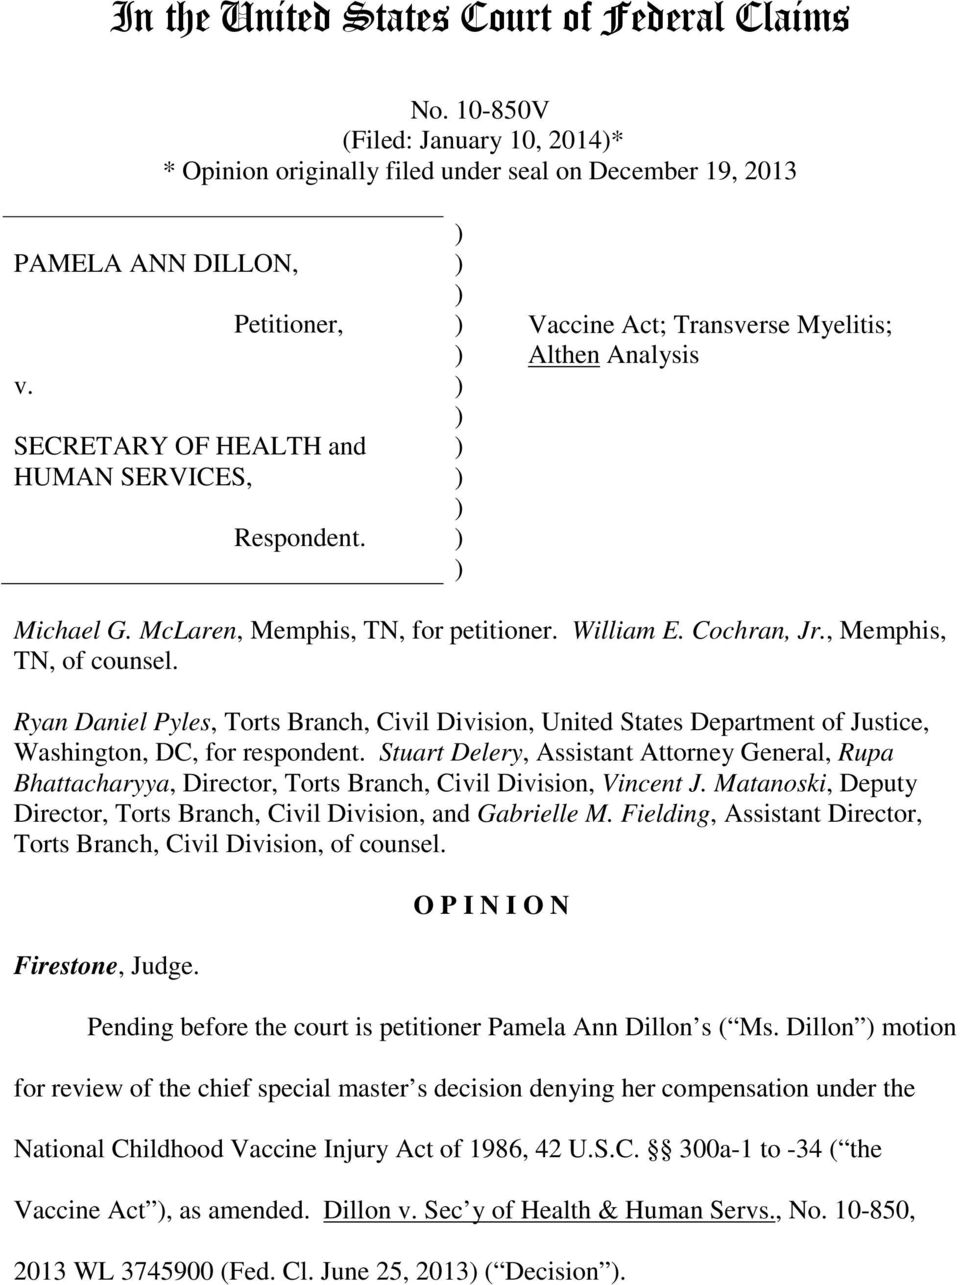 , Memphis, TN, of counsel. Ryan Daniel Pyles, Torts Branch, Civil Division, United States Department of Justice, Washington, DC, for respondent.